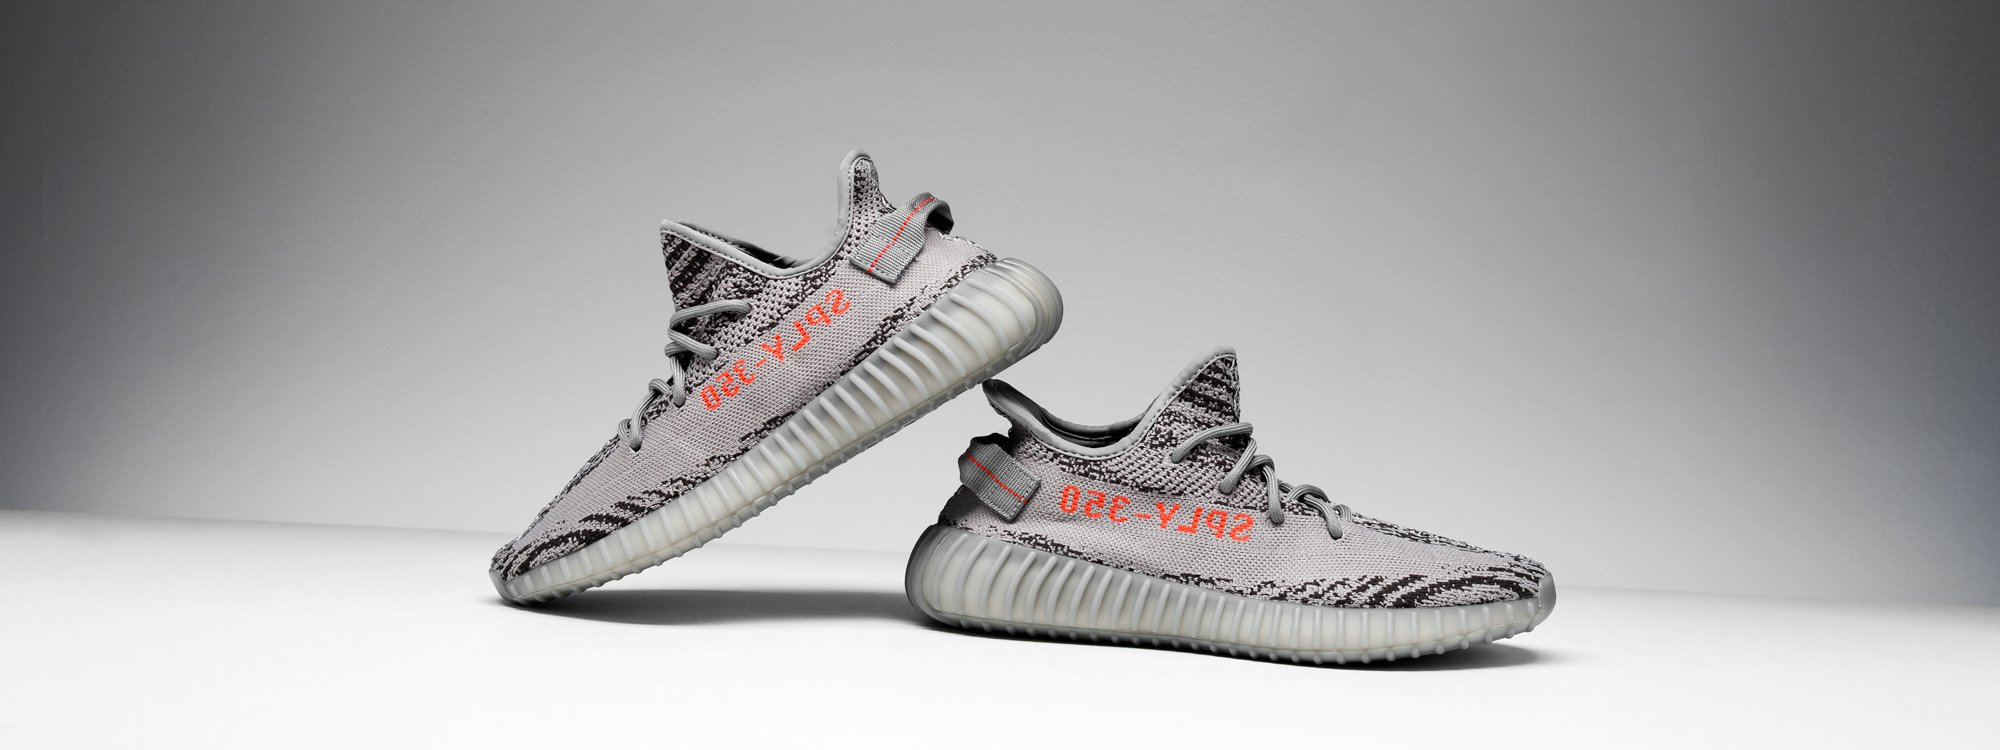 Price of Womens Adidas Yeezy Boost 350 V2 Beluga 2.0 sneakers